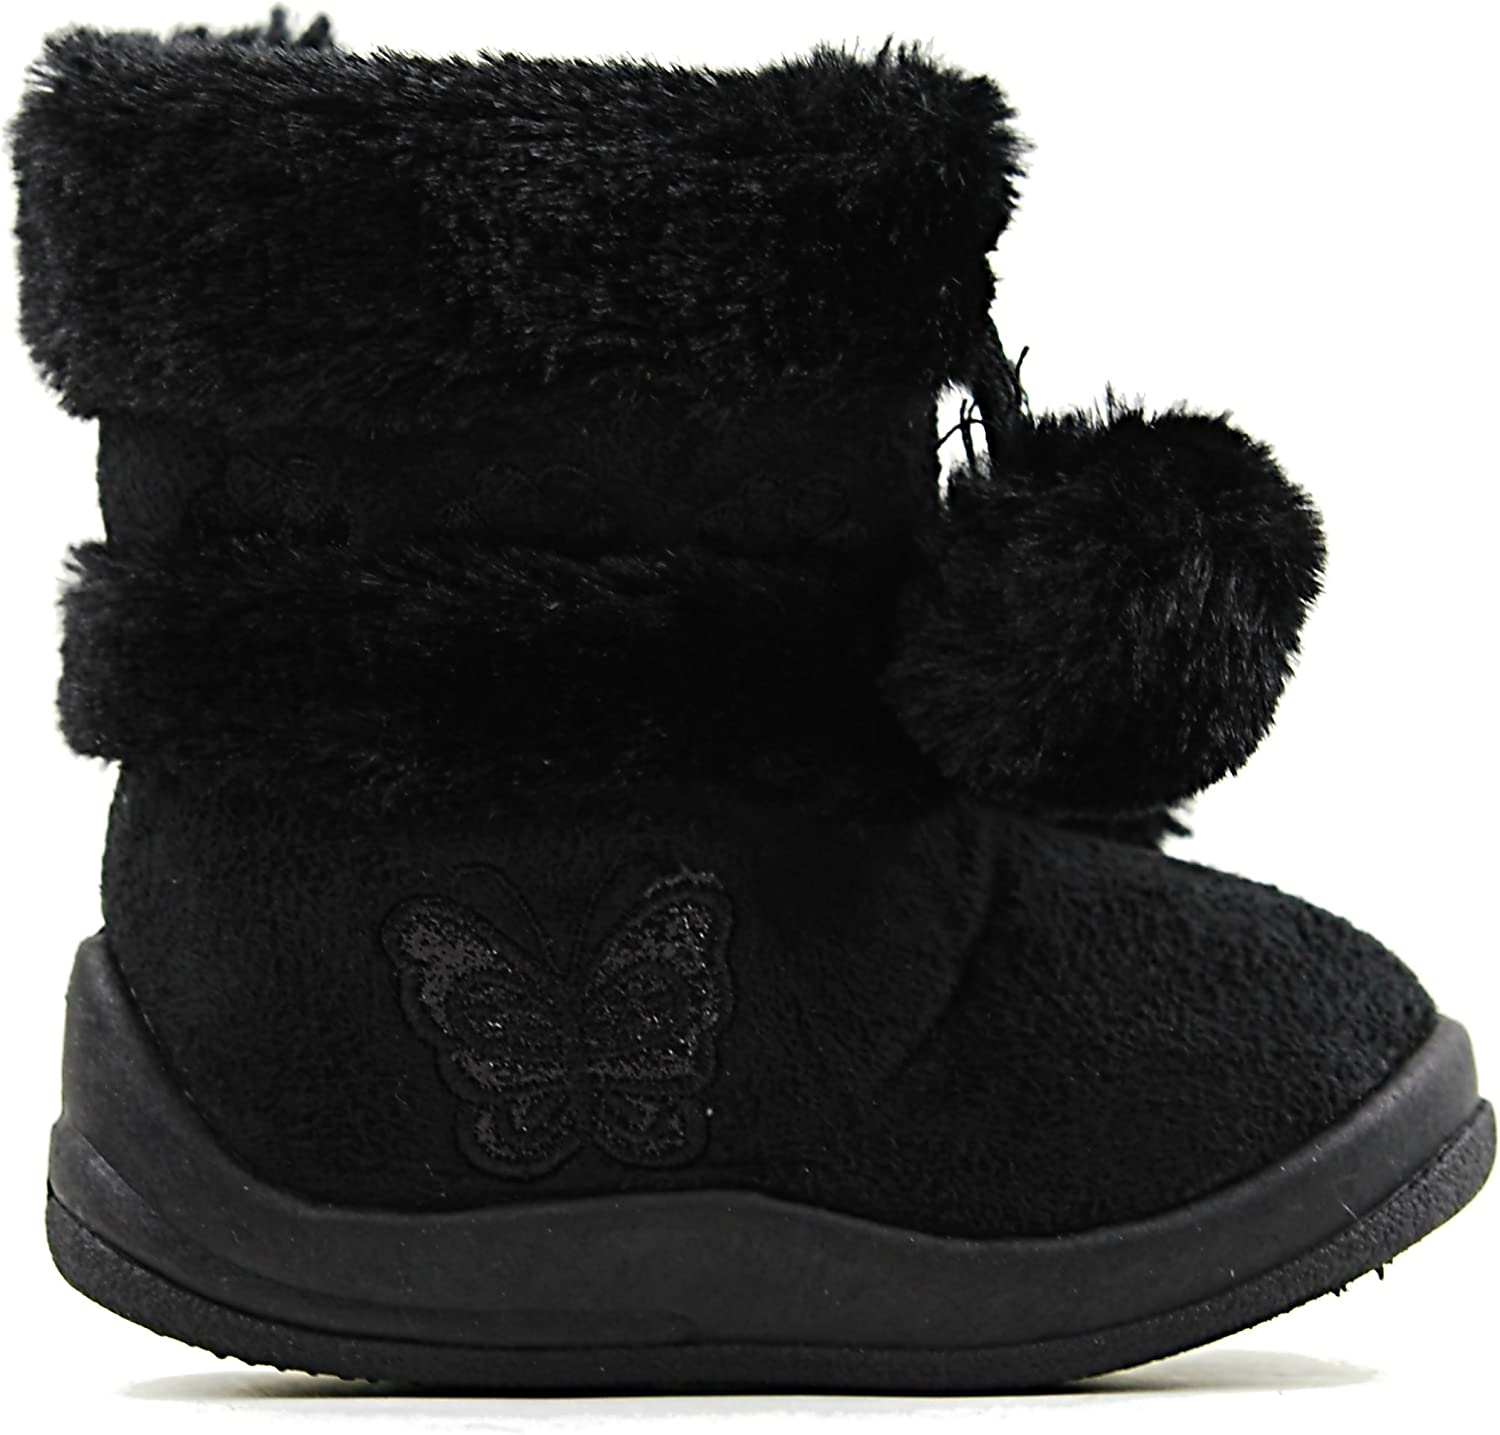 Kali Zello Baby Infant Girls Flat Snow Fashion Cute Booties Boots